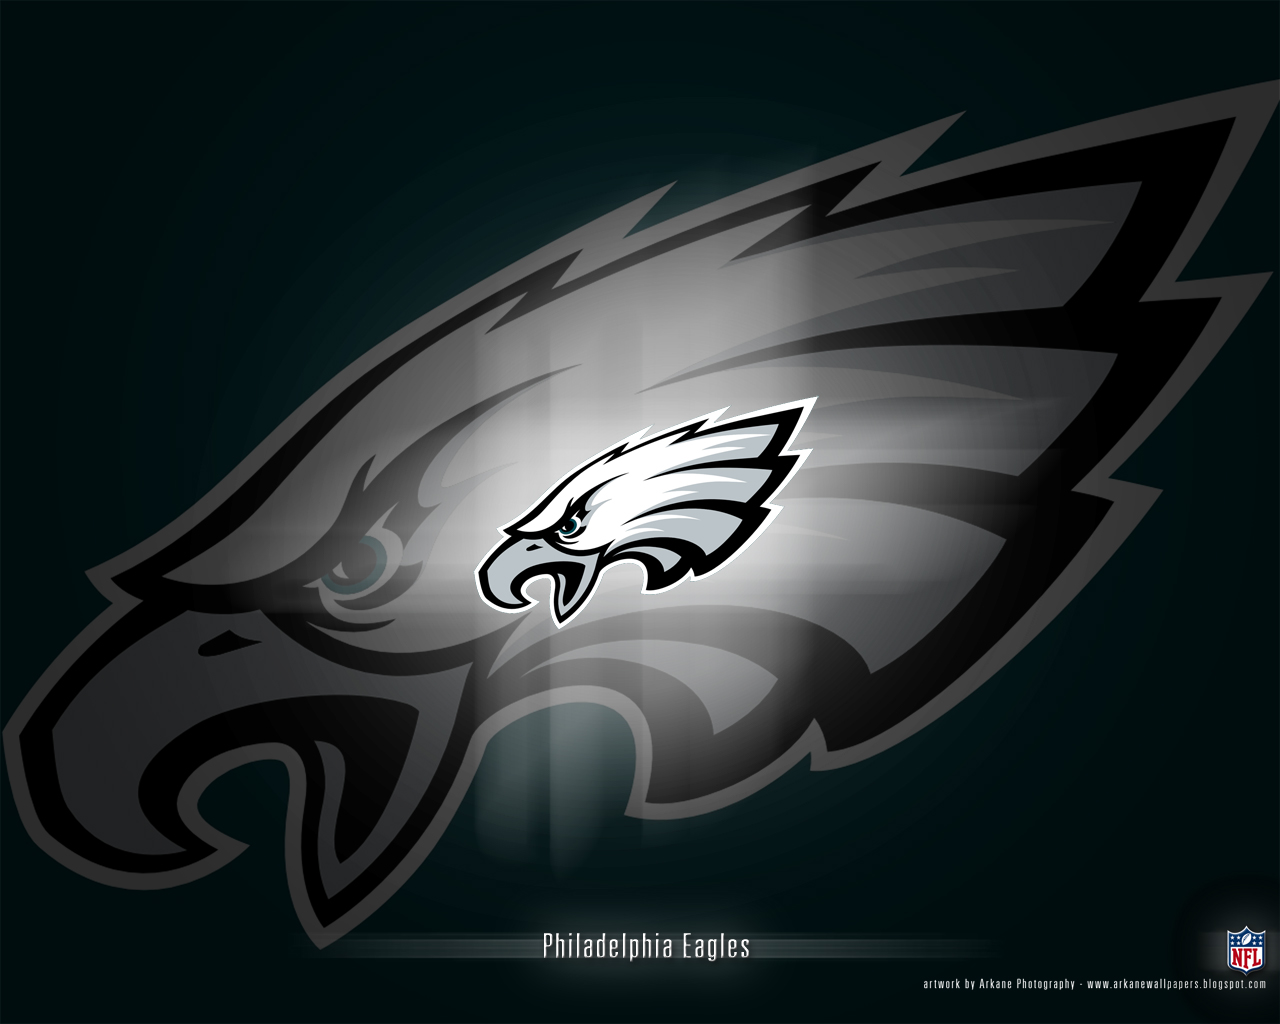 Eagles 38675311 Wallpaper for Free | Nice High Quality Images